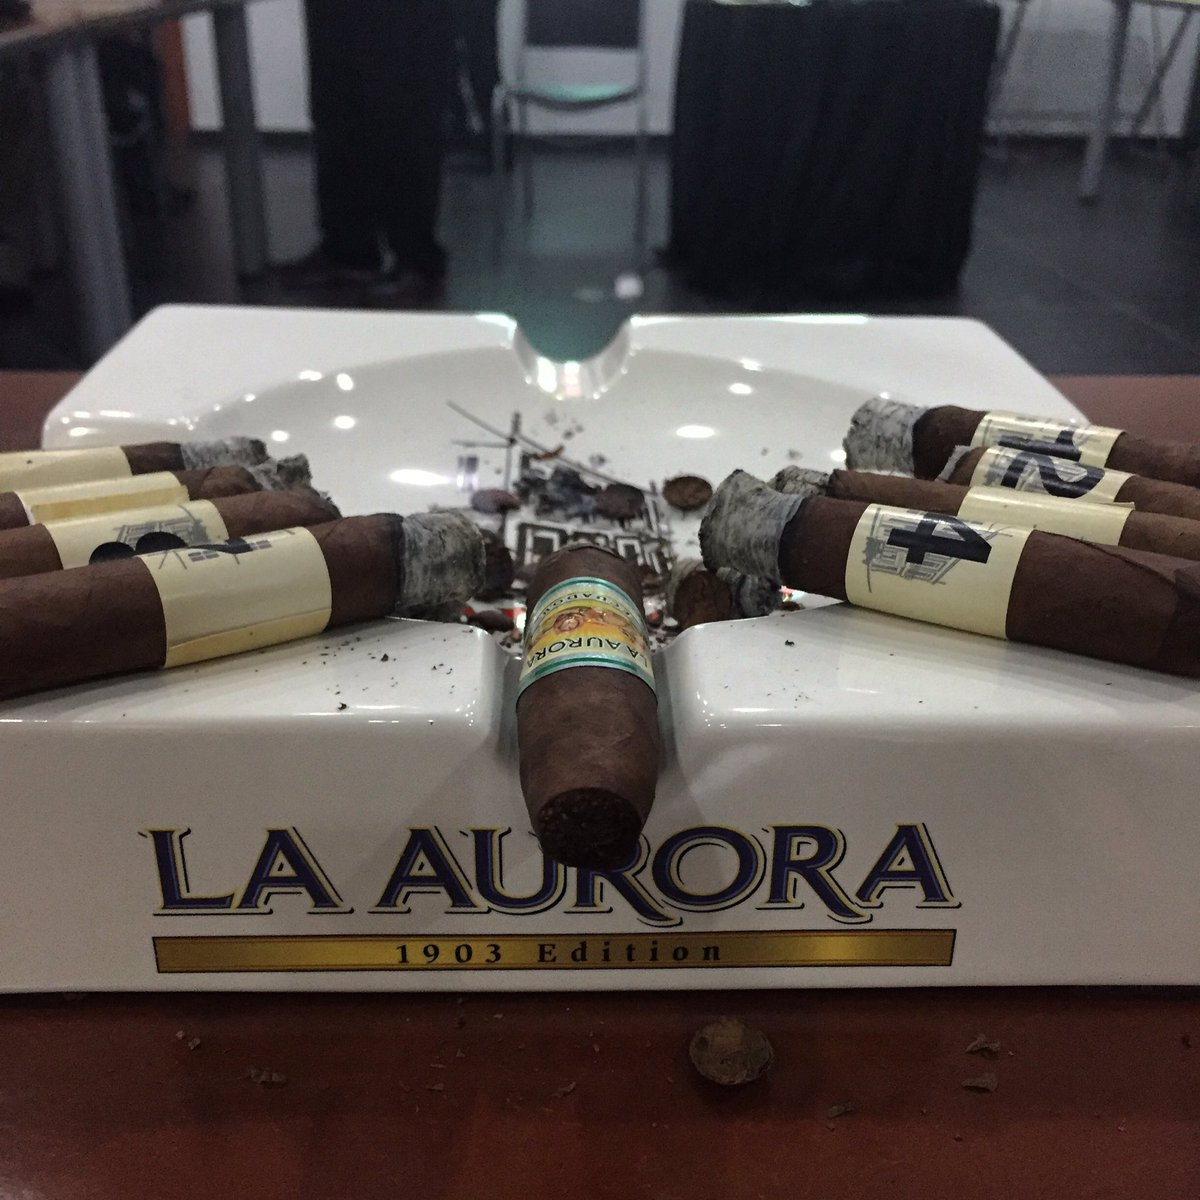 In #LaAuroraTraningKit you'll find four cigars pure grade, with which you will learn to taste flavors and odors. https://t.co/8sybpjV3x6